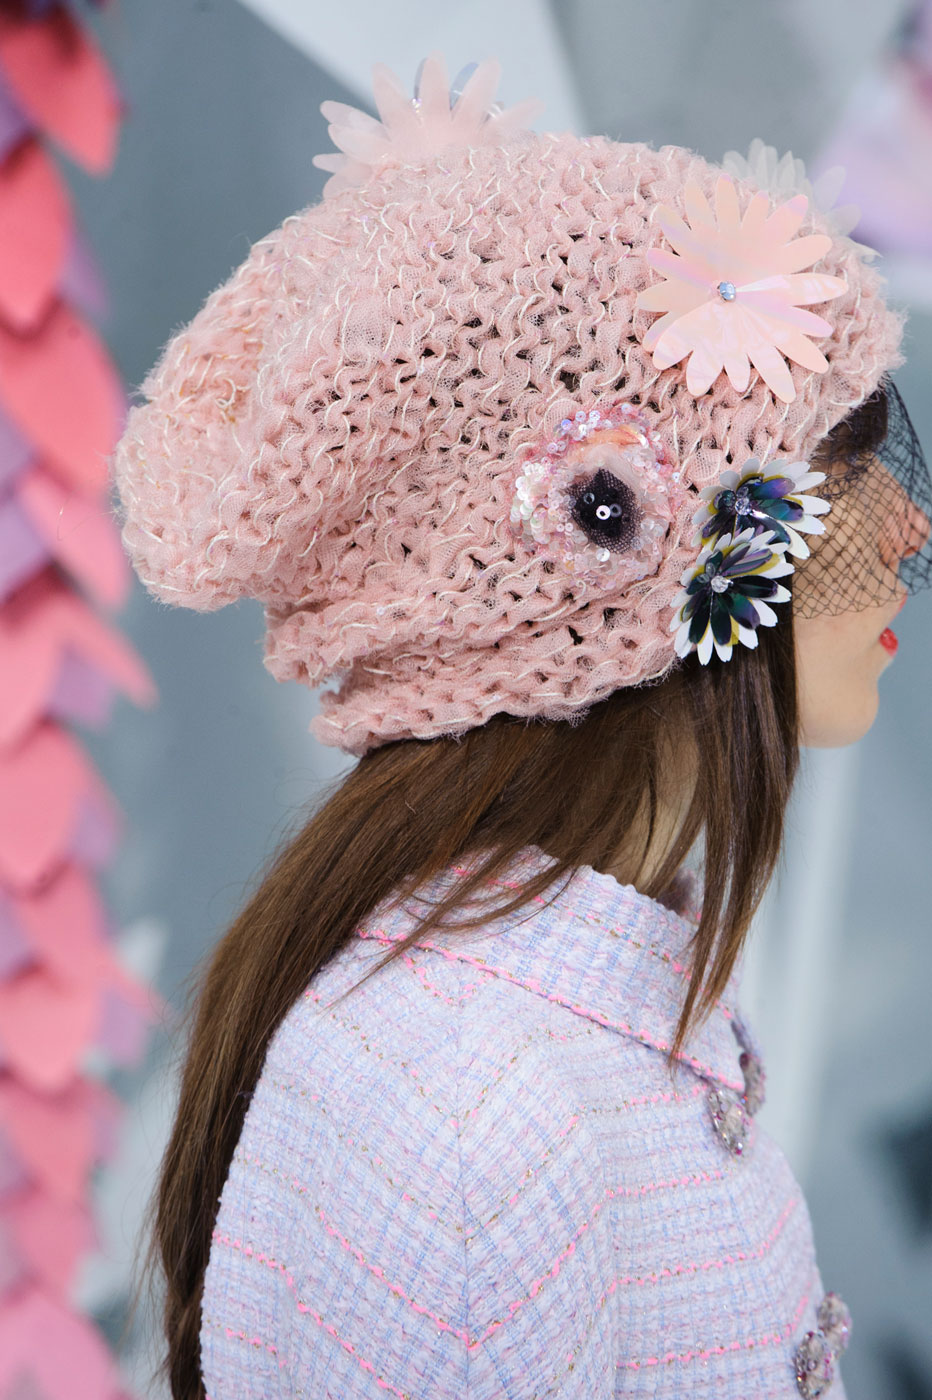 Chanel-fashion-runway-show-close-ups-haute-couture-paris-spring-summer-2015-the-impression-019